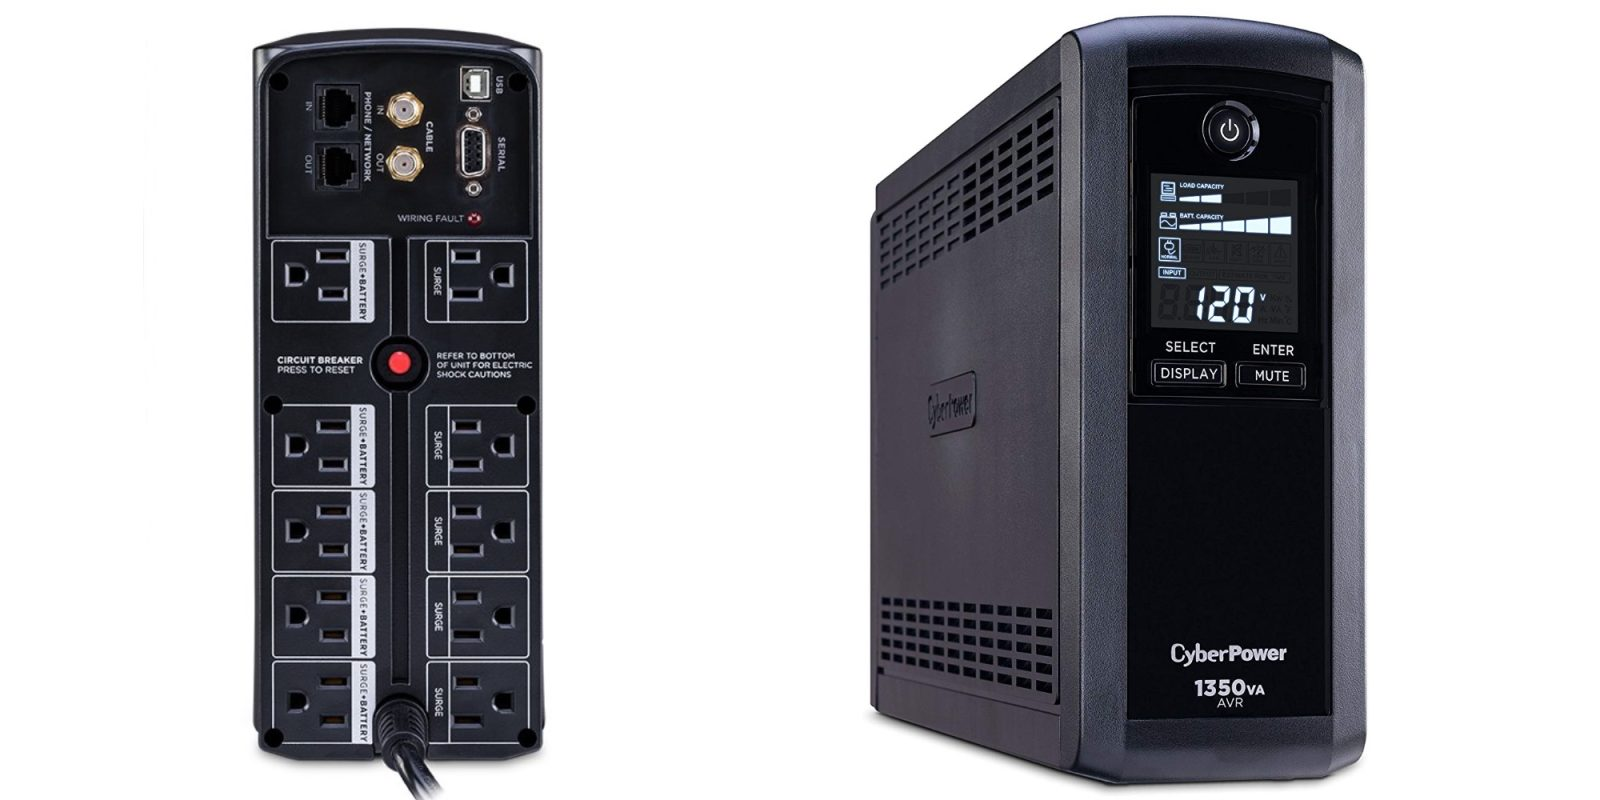 Fight off power outages with CyberPower's 1350VA 10-Outlet UPS at $110 ($25 off)